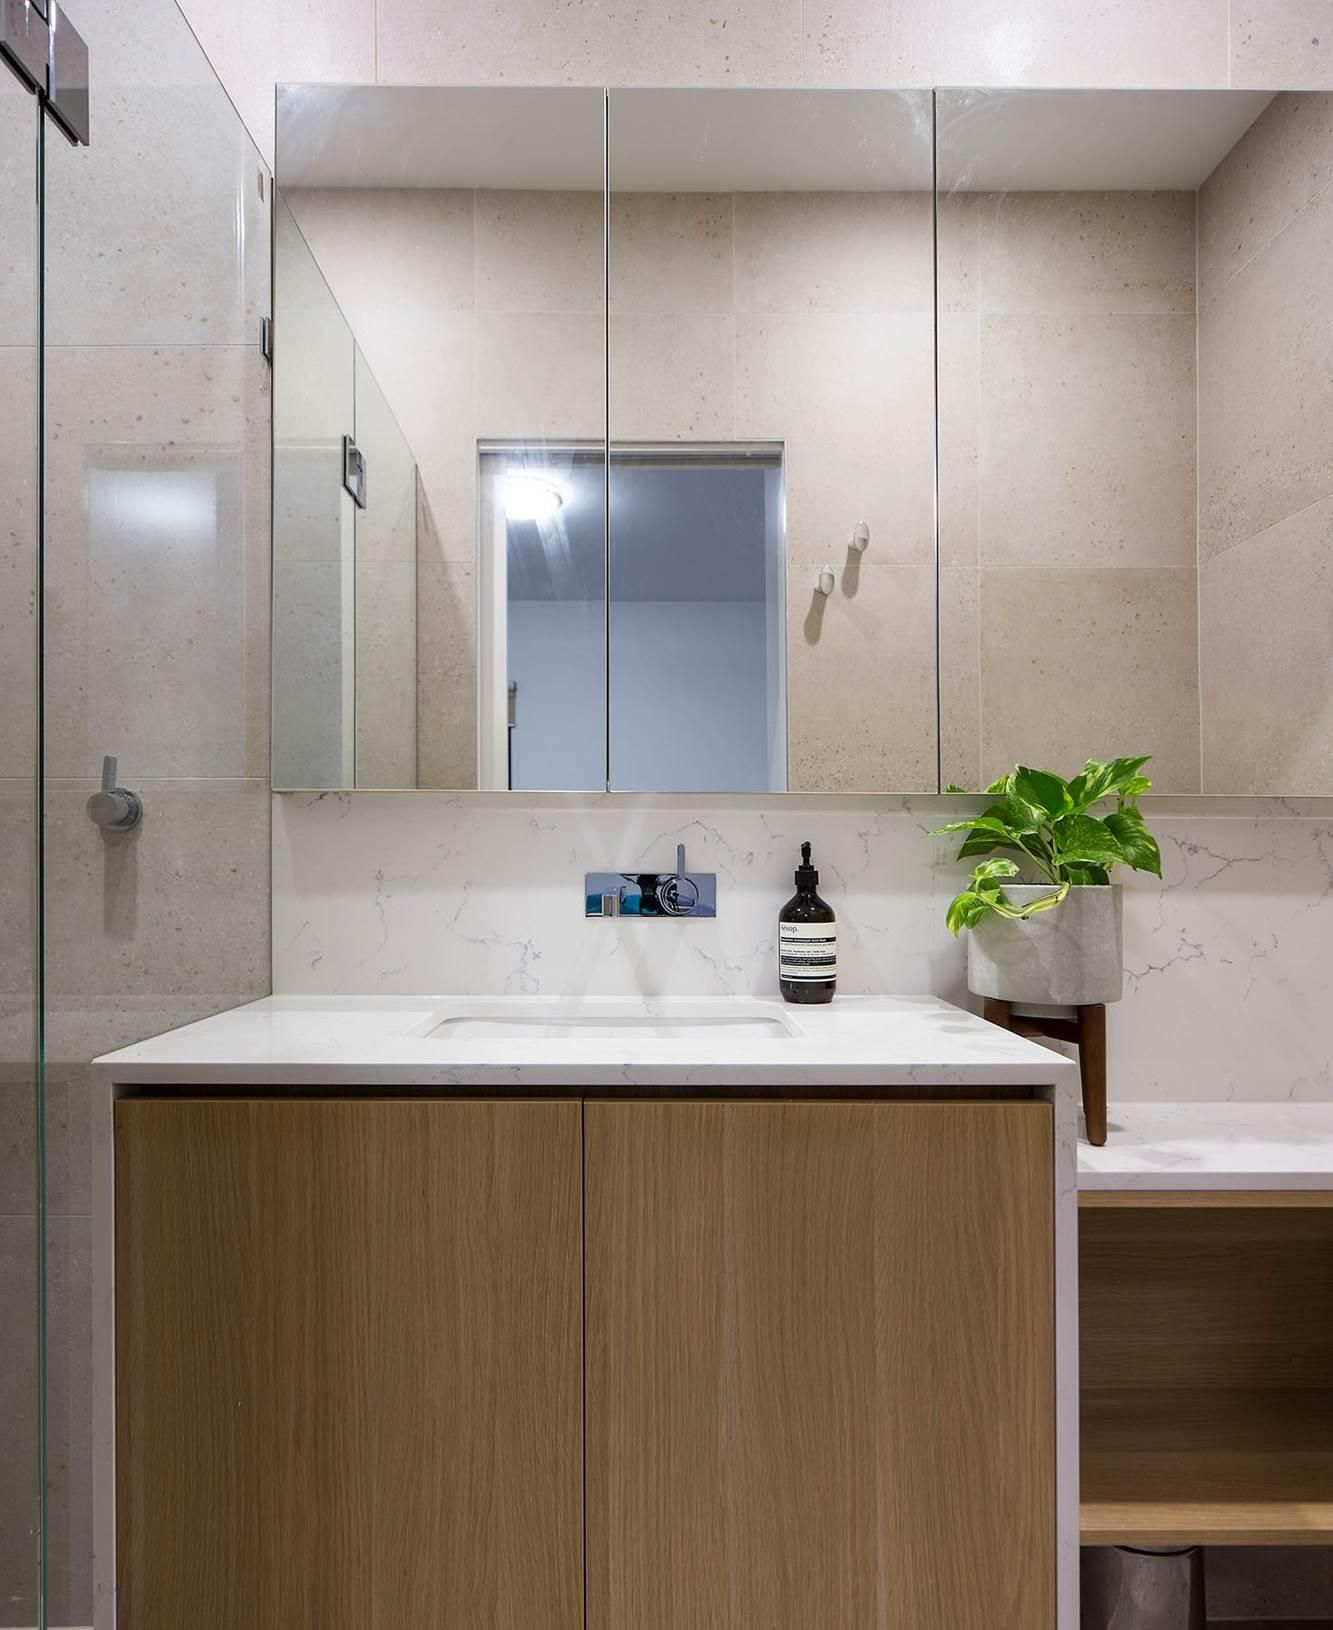 get custom bathroom renovation done in melbourne on bathroom renovation ideas melbourne id=70403